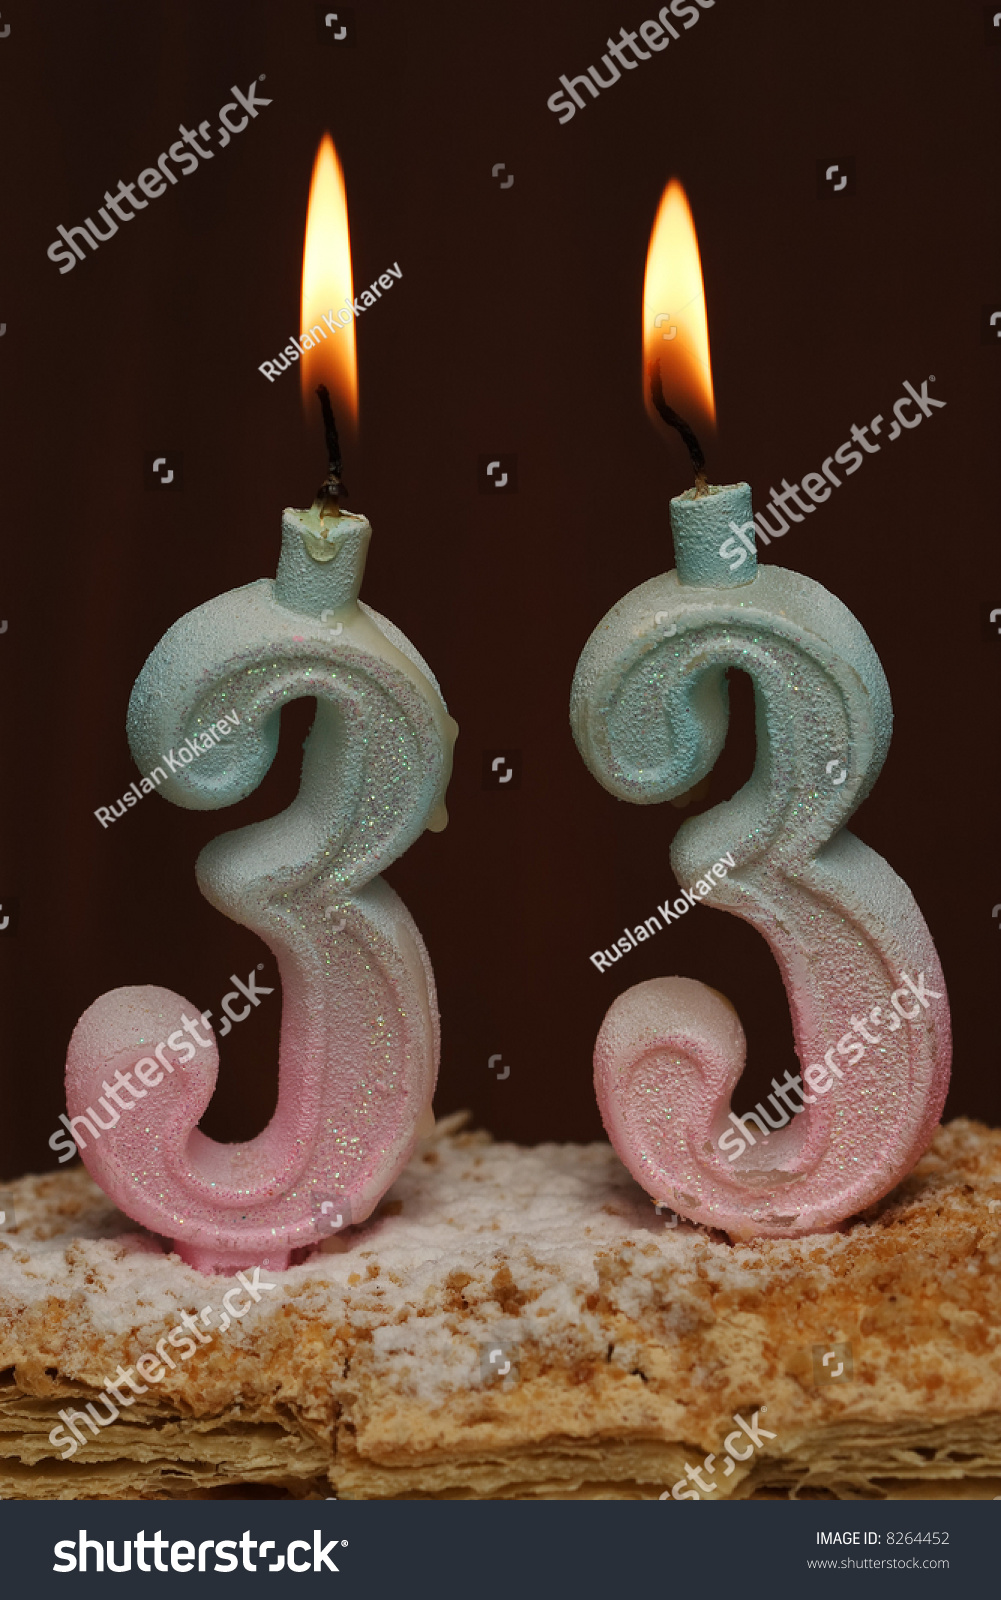 Candle In 33 Year Old Birthday Cake Stock Photo 8264452